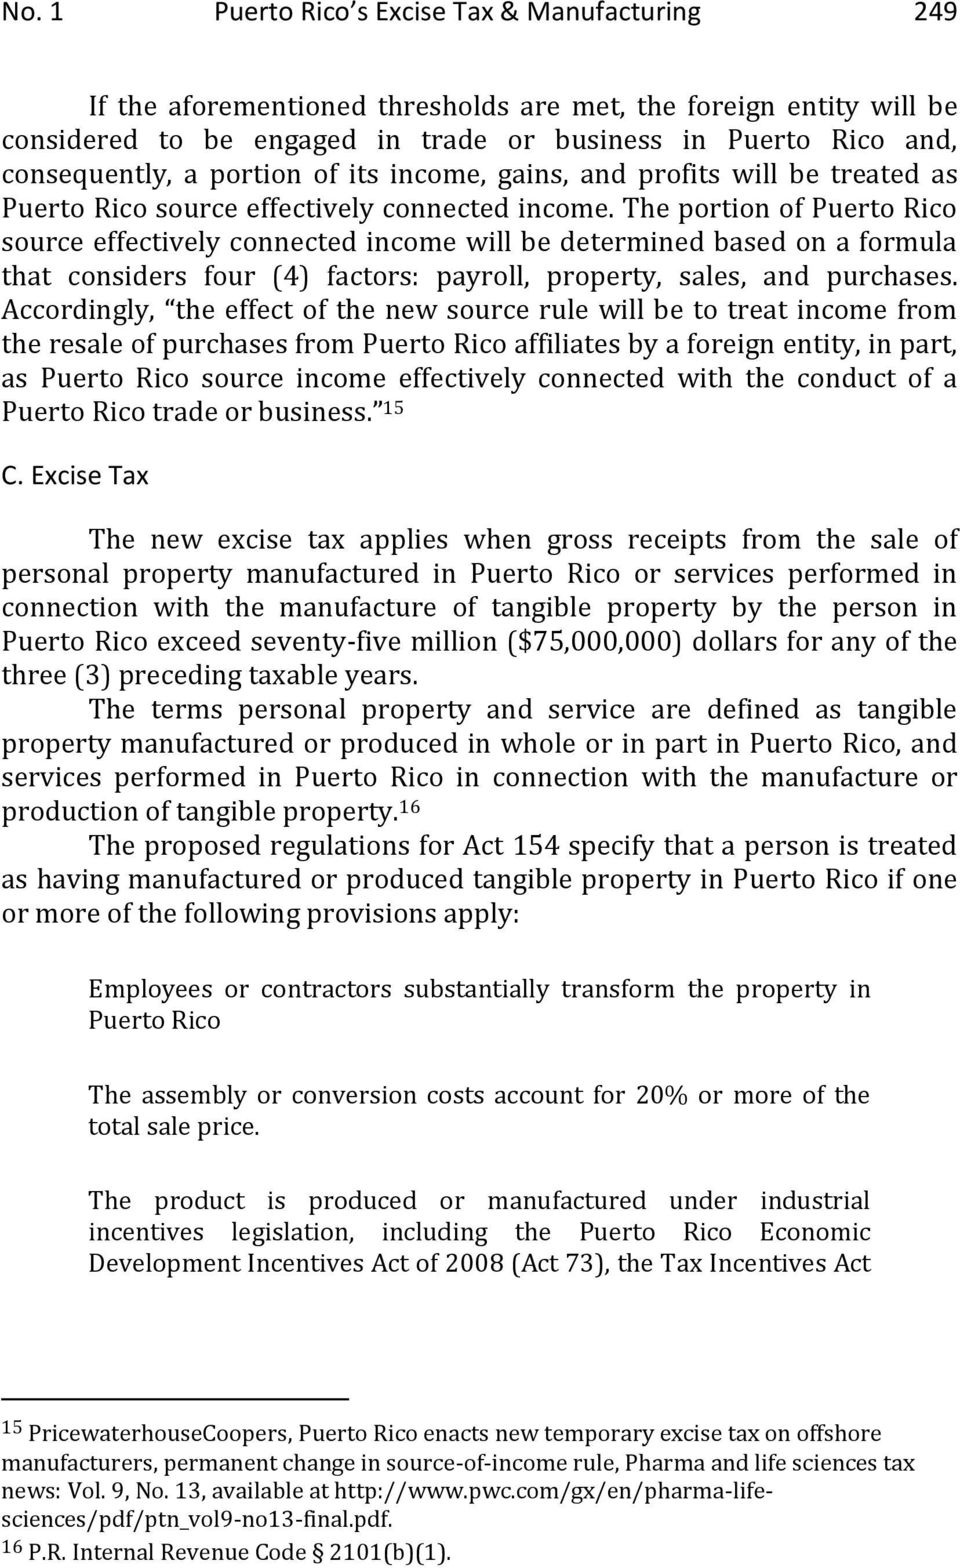 The portion of Puerto Rico source effectively connected income will be determined based on a formula that considers four (4) factors: payroll, property, sales, and purchases.